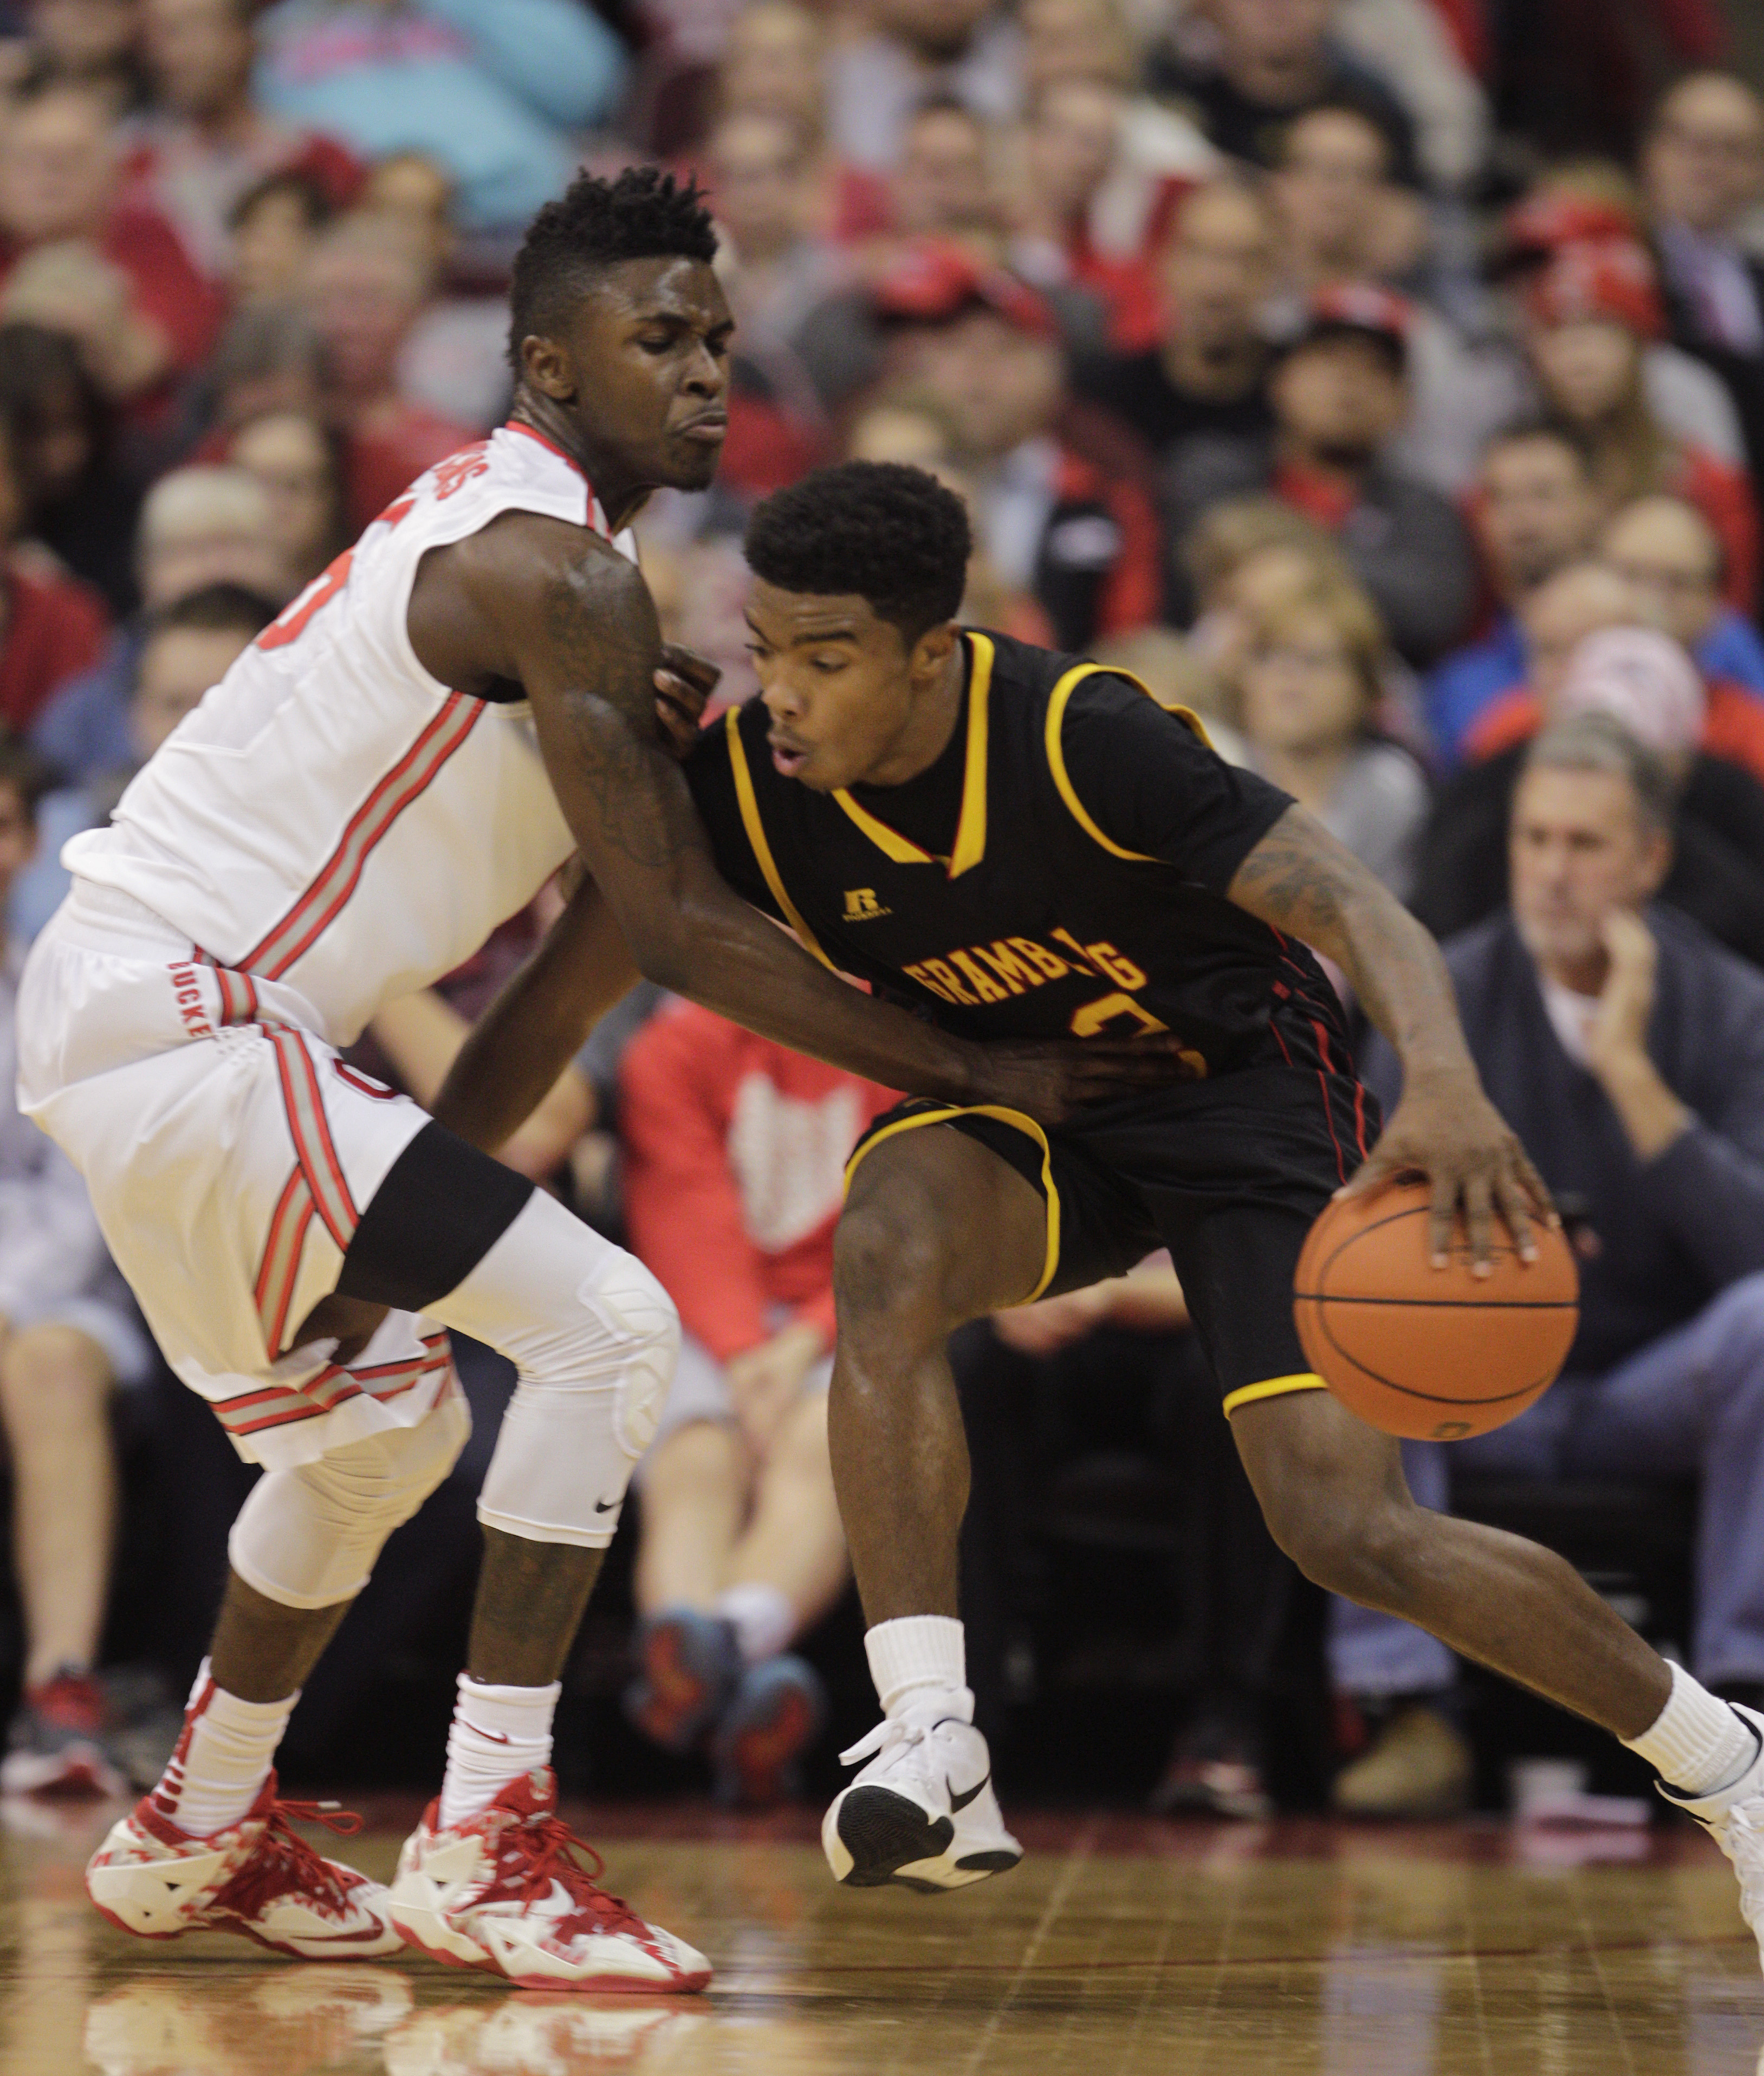 Grambling State's Nigel Ribeiro, right, tries to dribble past Ohio State's Kam Williams during the first half of an NCAA college basketball game Tuesday, Nov. 17, 2015, in Columbus, Ohio. (AP Photo/Jay LaPrete)